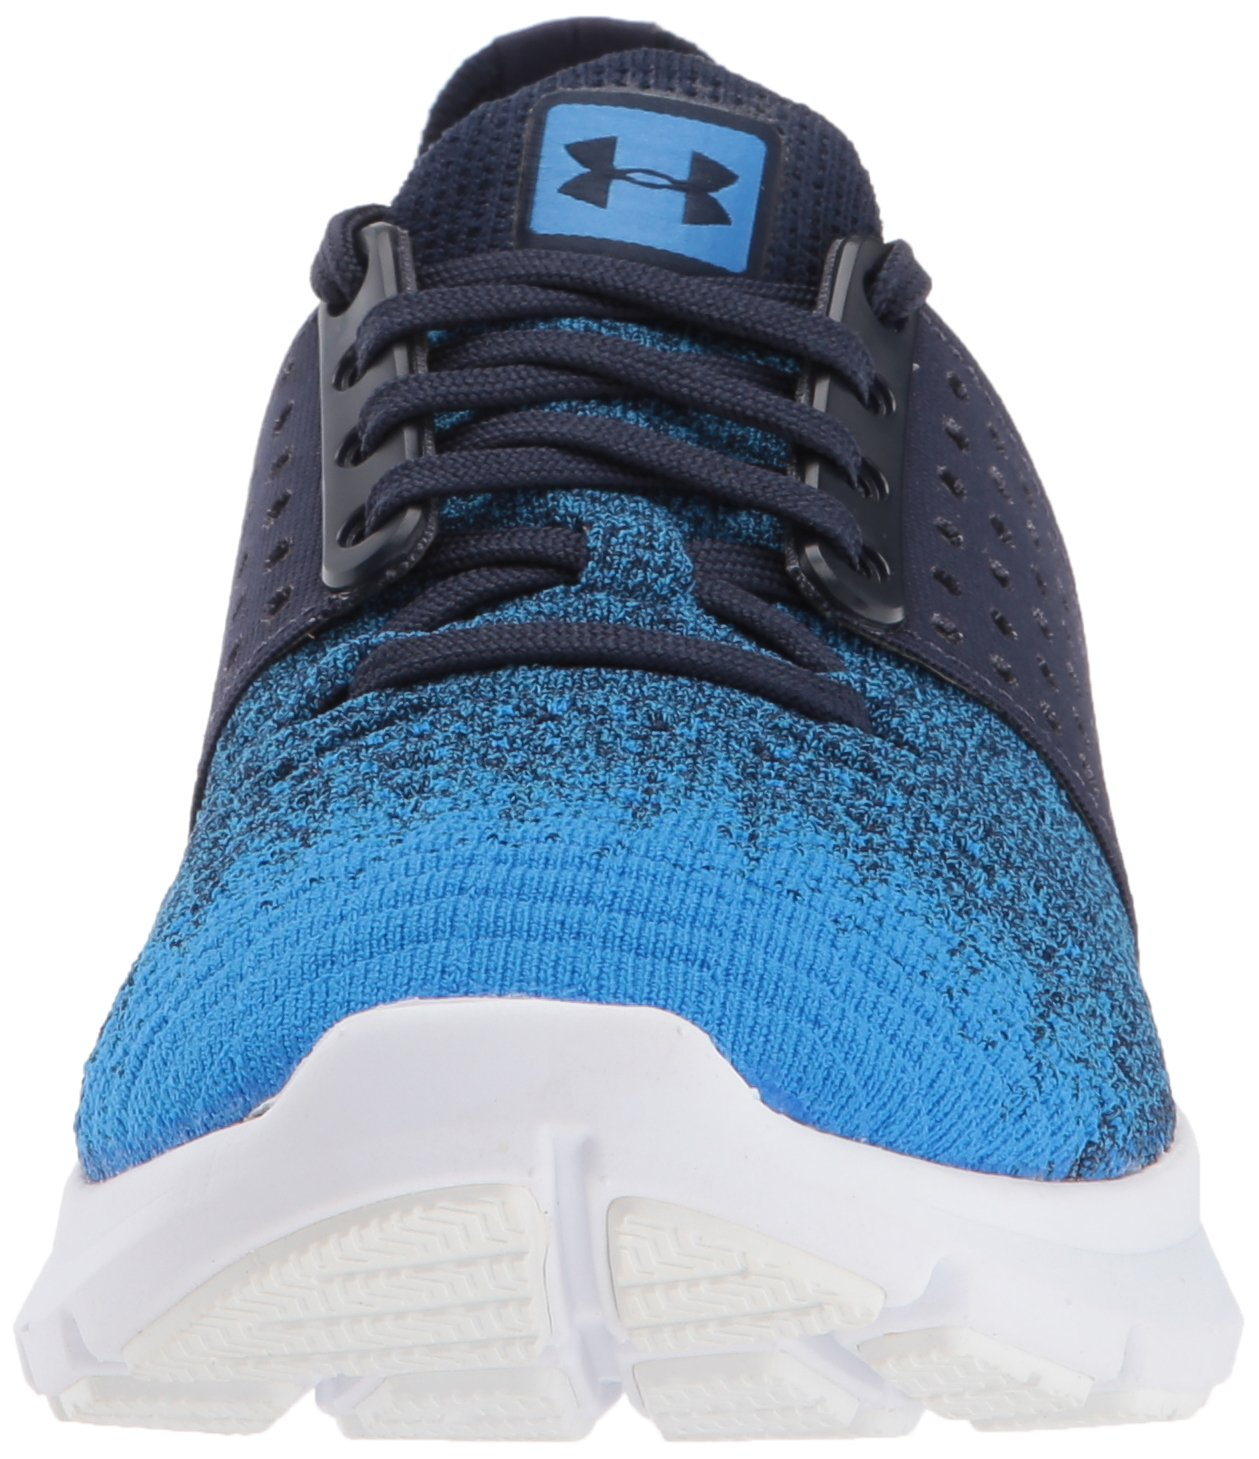 Under Armour Women's Speedform Slingwrap Fade Running Shoe B01MQUDSTI 11 Blue M US|Midnight Navy (401)/Mako Blue 11 b74862